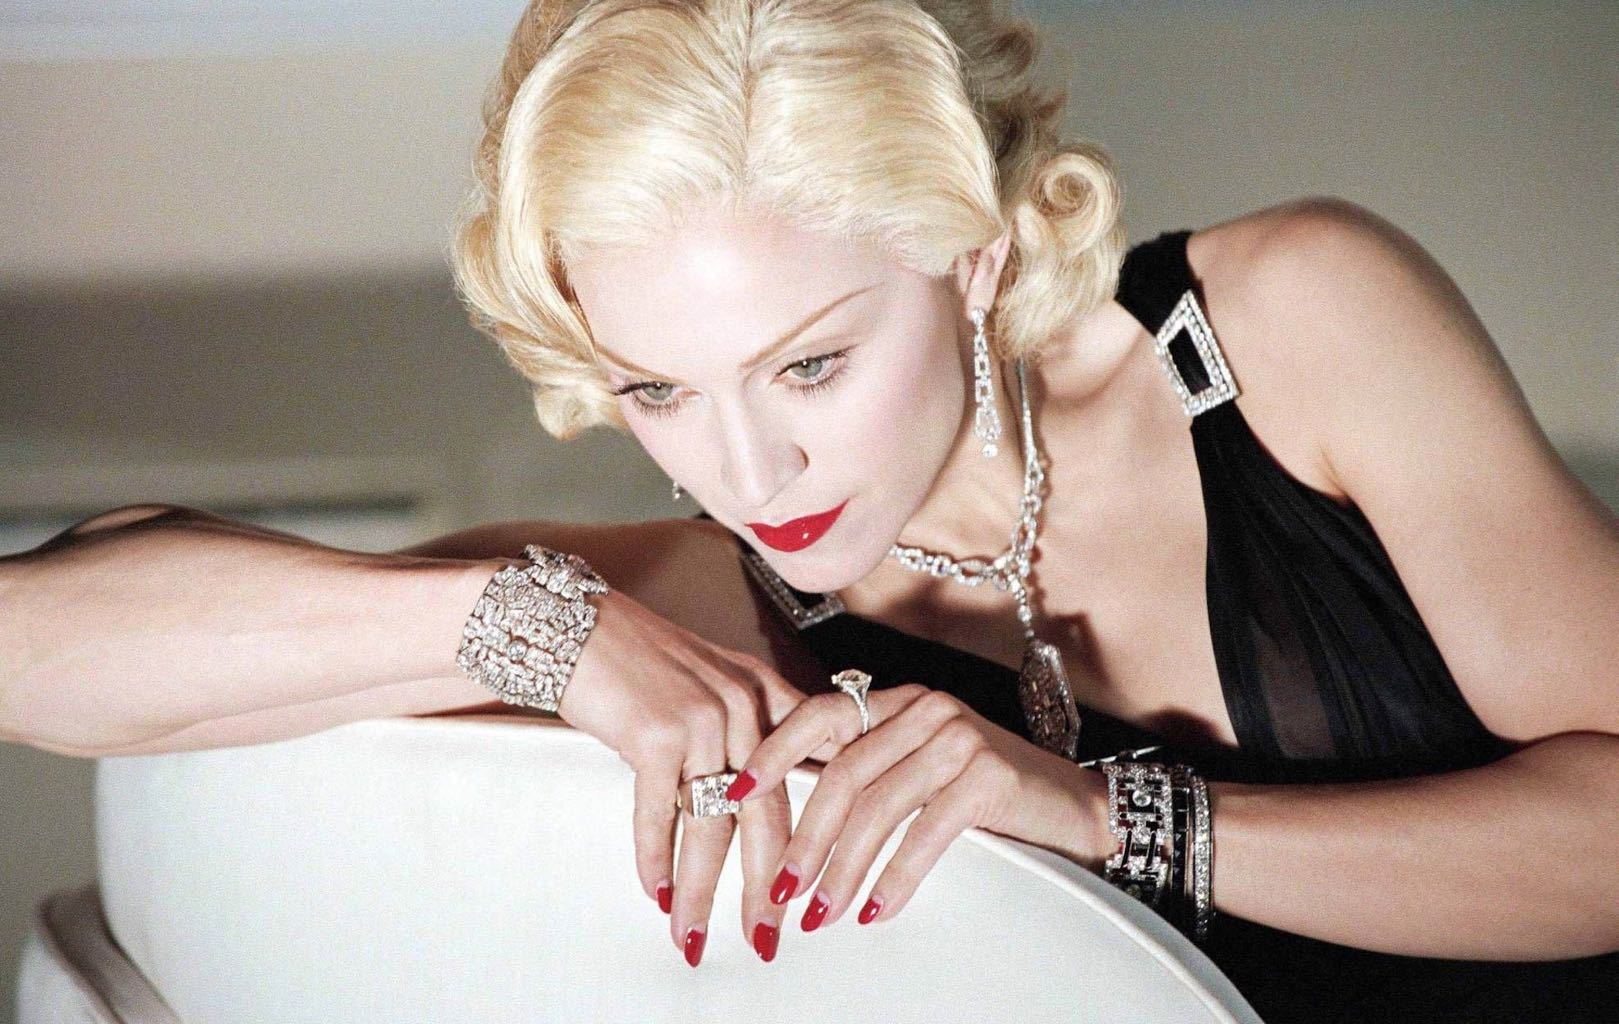 Madonna wearing Mae West's diamond bracelet among other jewels from Neil Lane's vintage collection in her 2006 video 'Hollywood.' Photo via